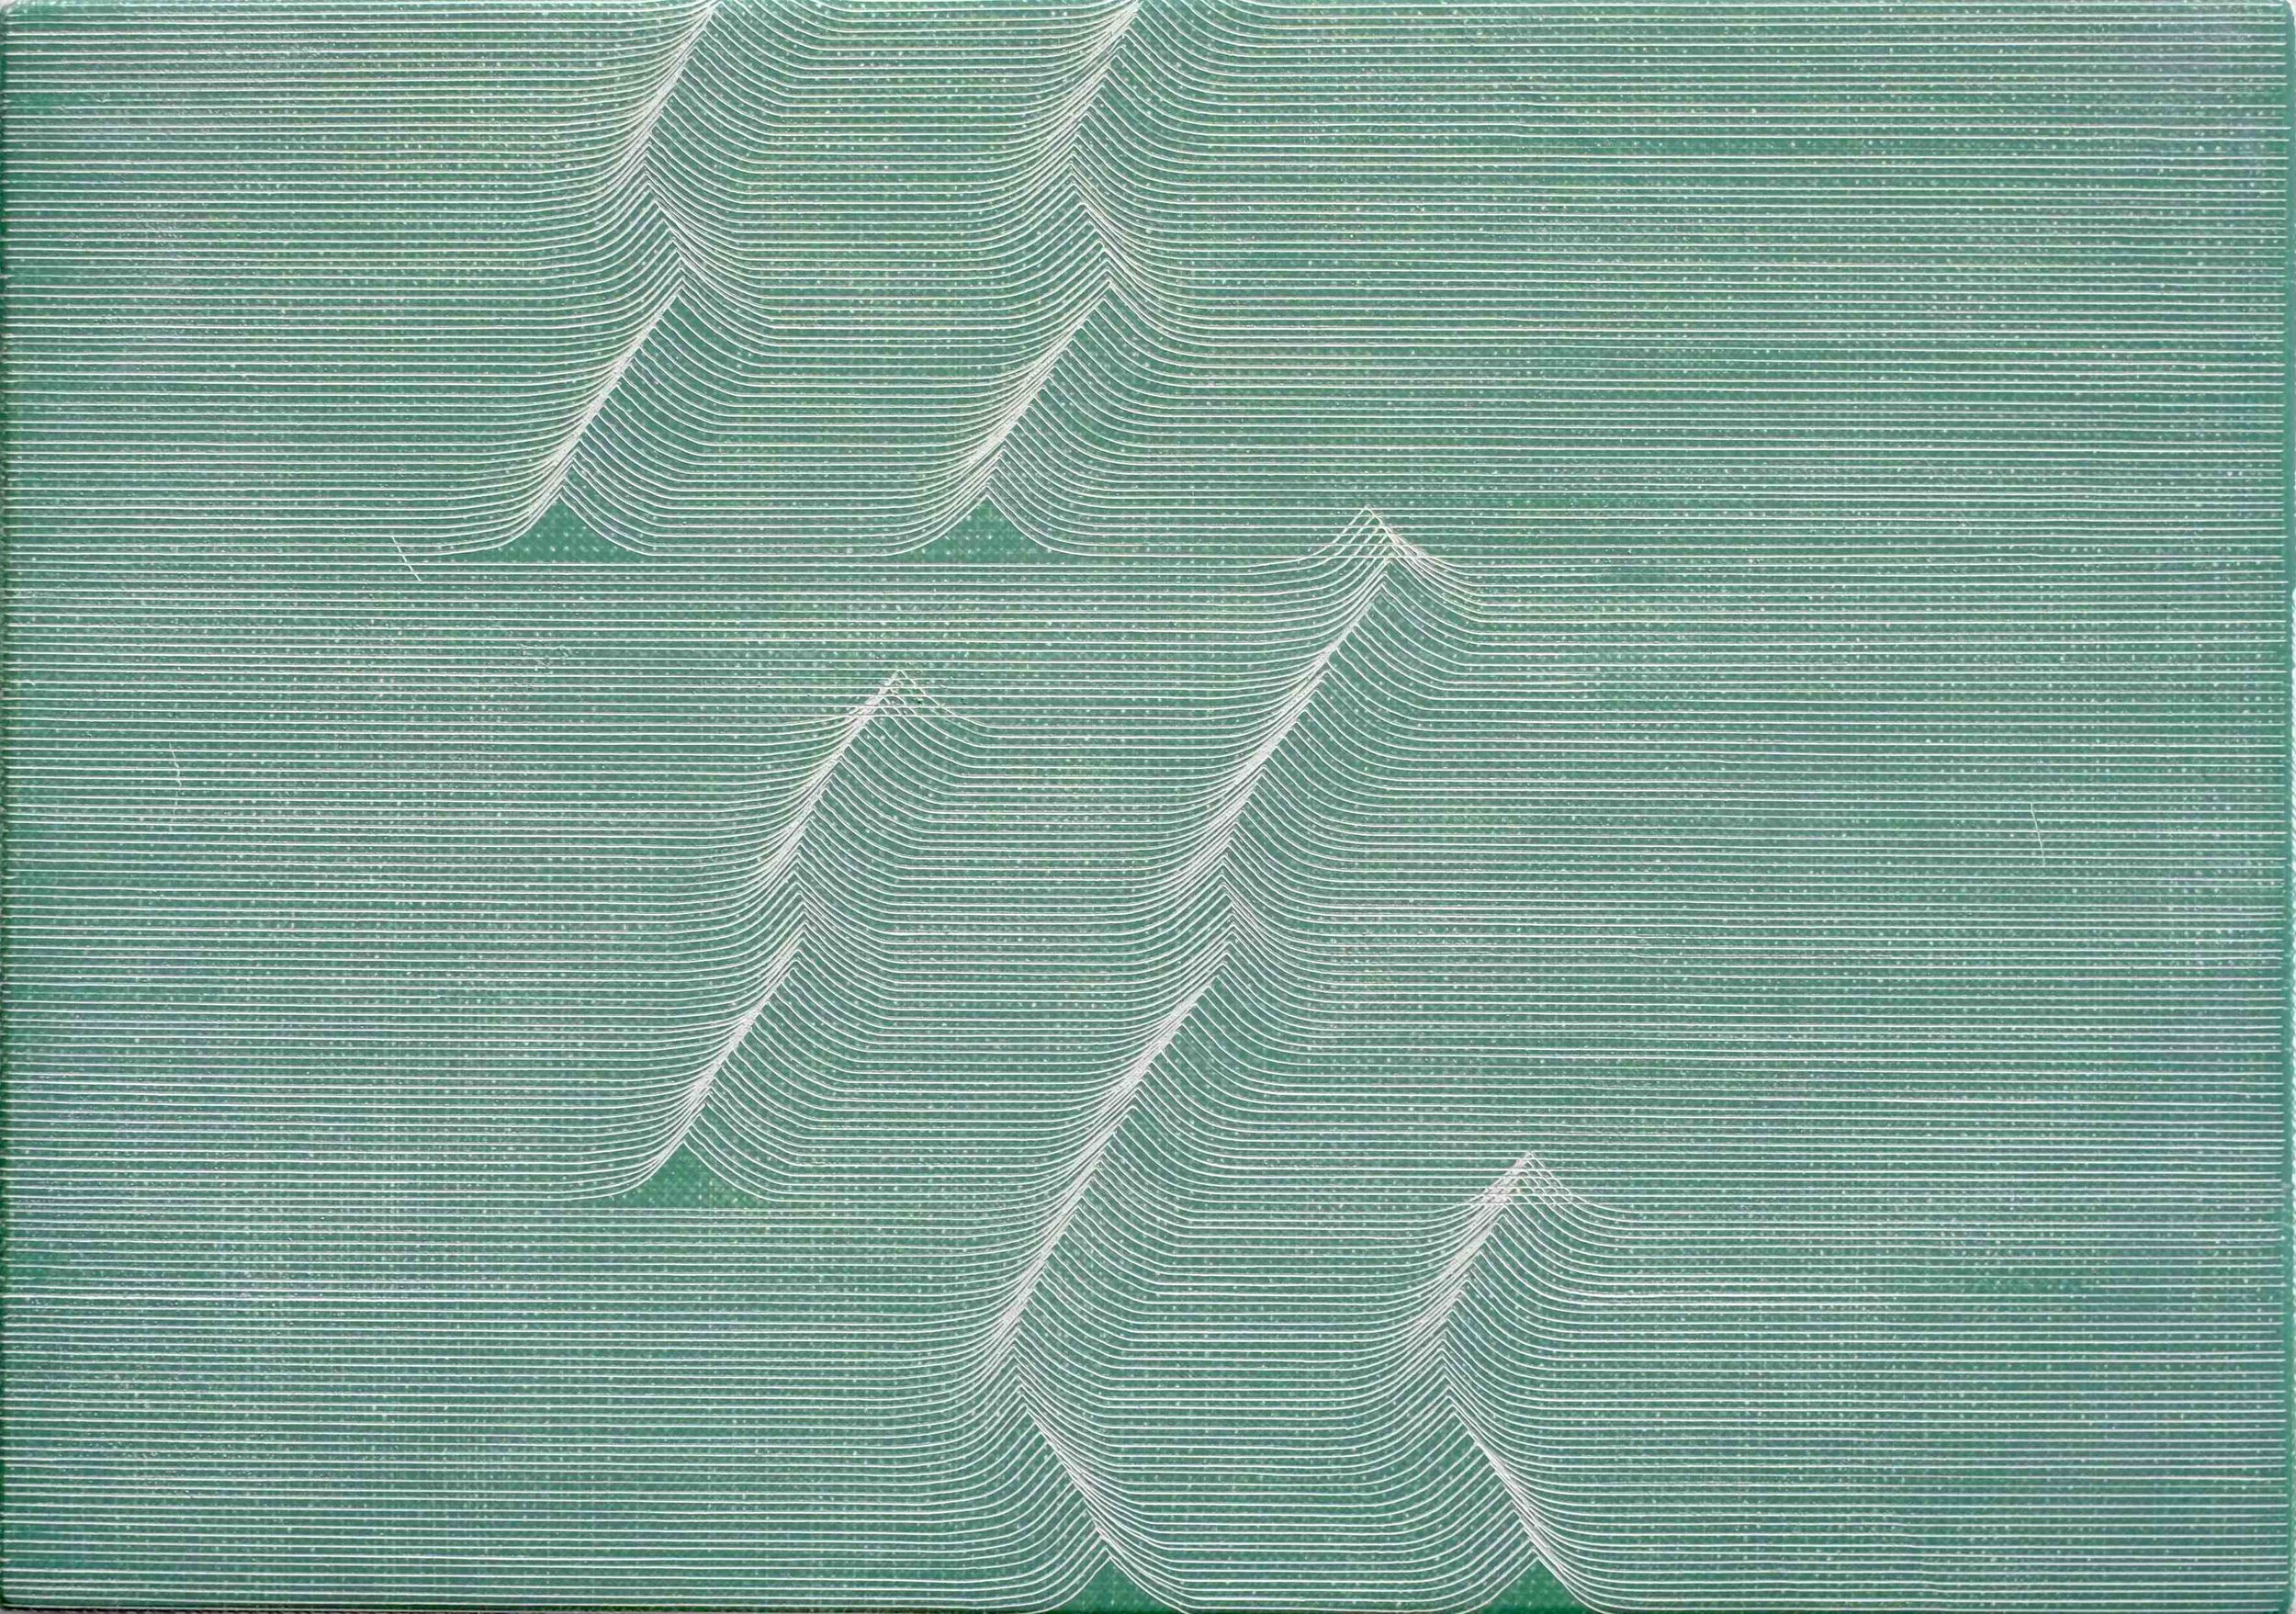 Long Ending (Green)   Casein paint and scratches on gesso panel  21.5 x 30 x 2.5 cm